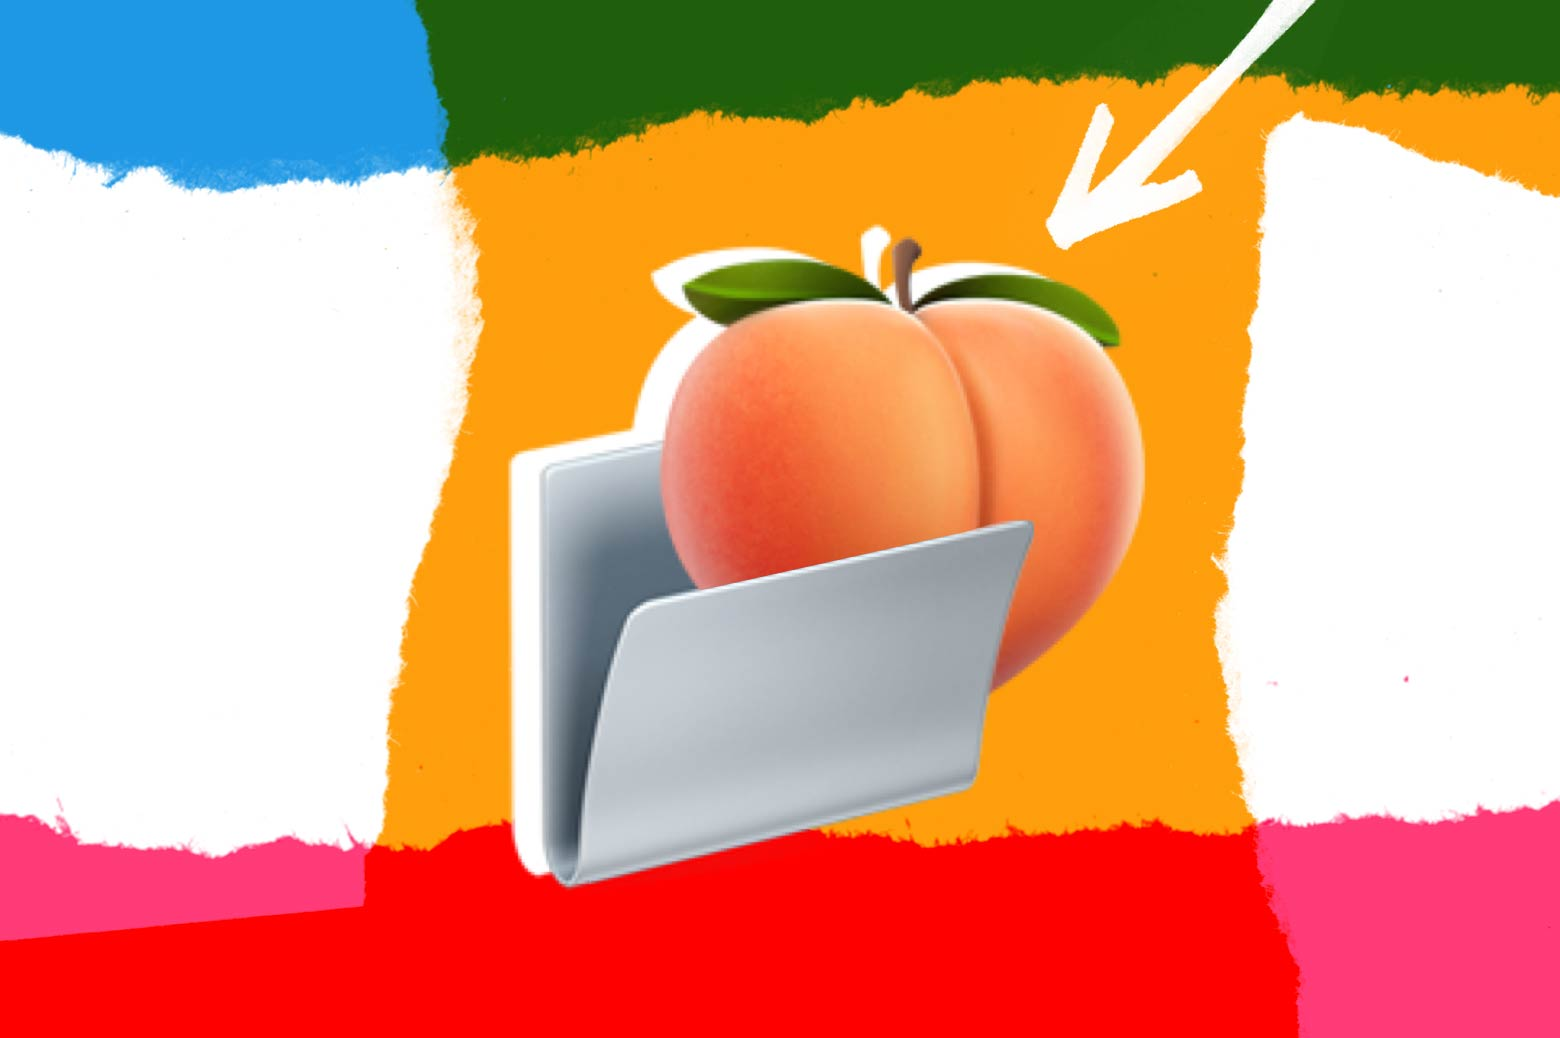 A peach emoji nestling into a folder emoji.